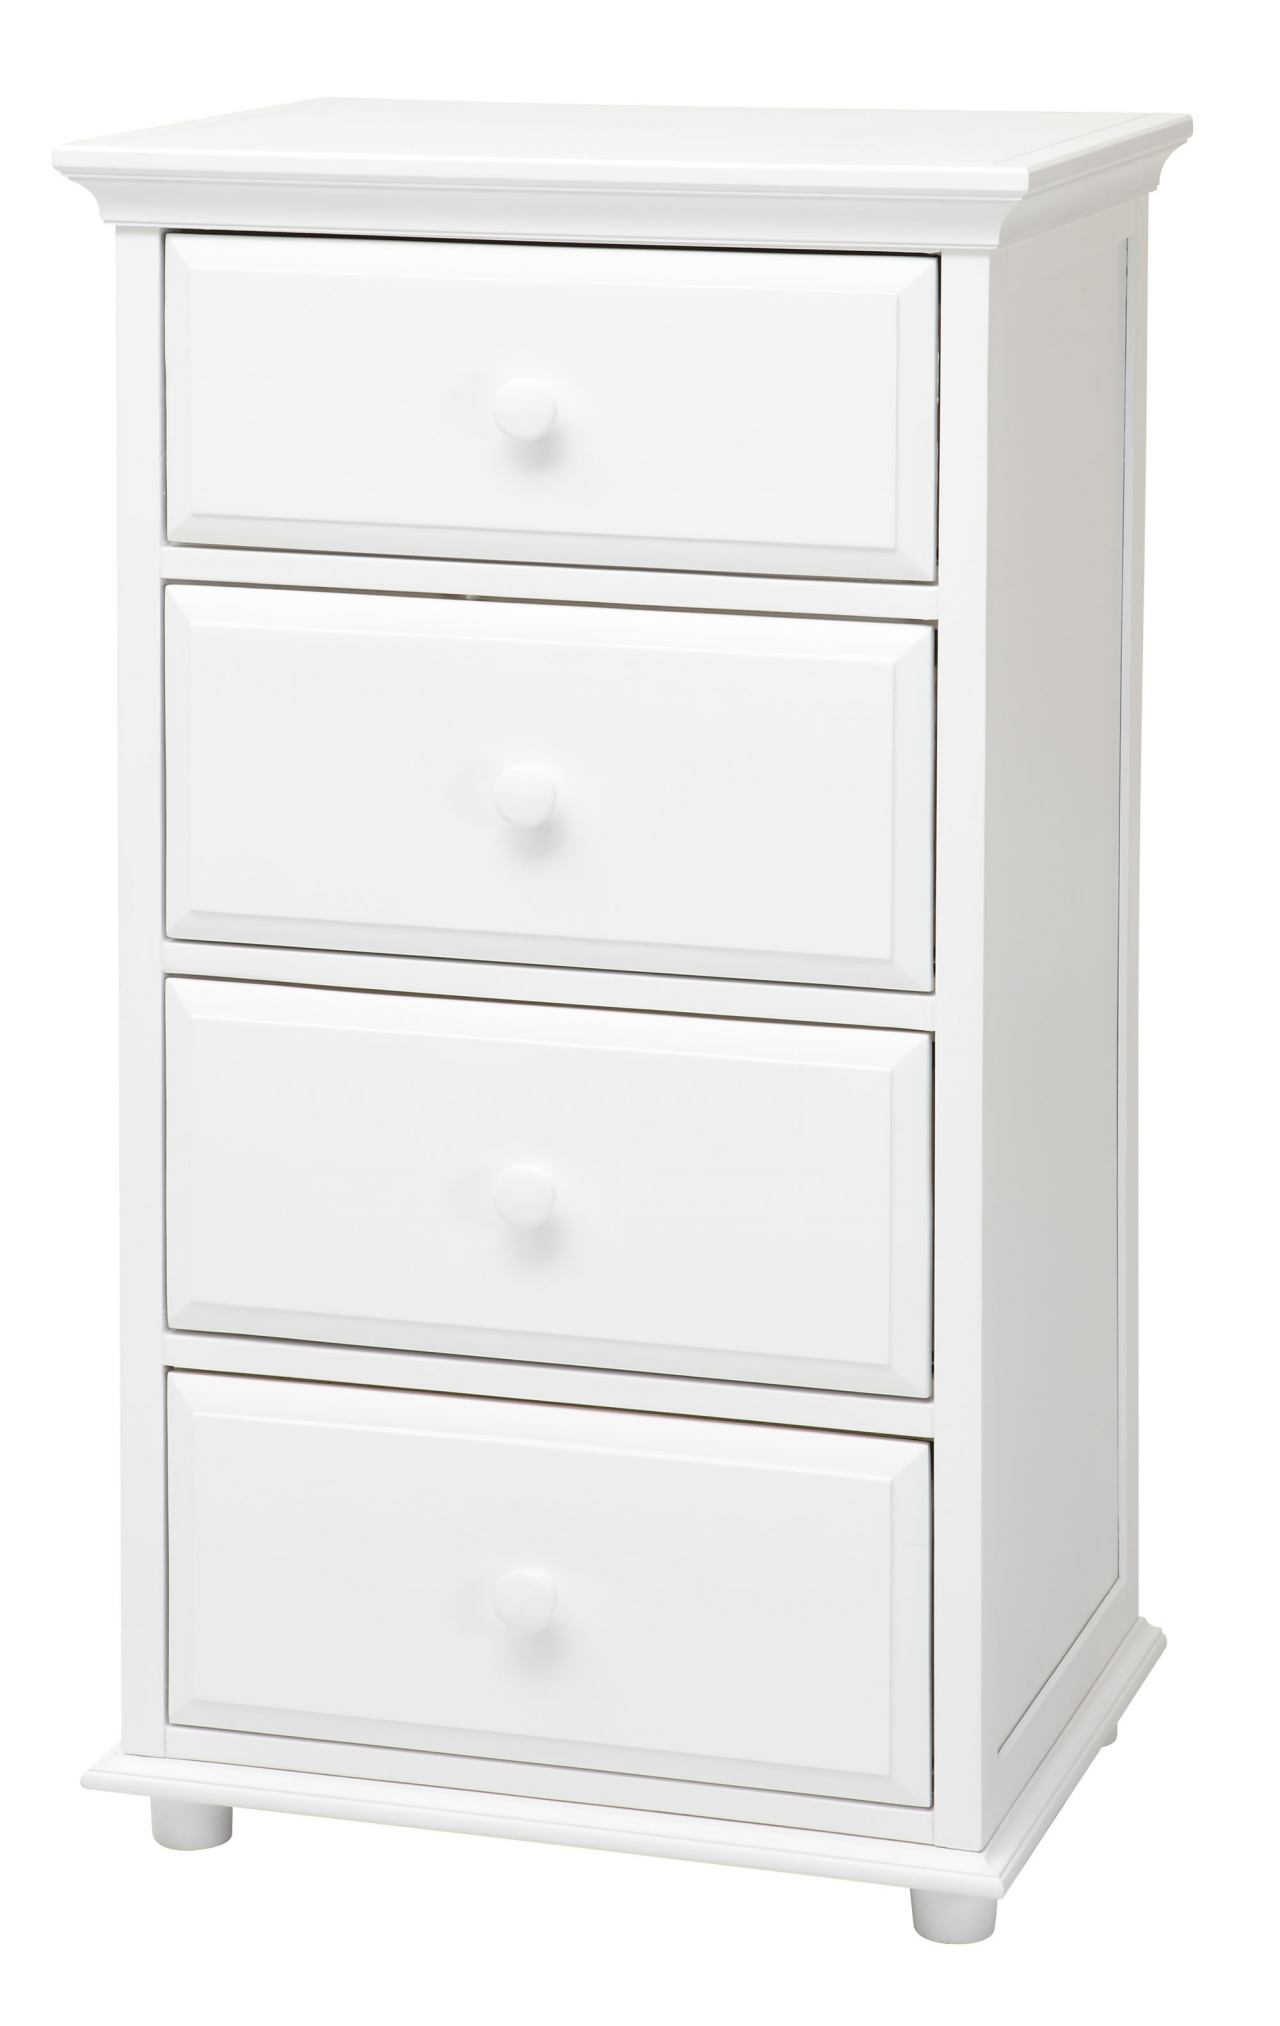 Maxtrix 4.5 Drawer Chest with Crown and Base in White BIG 4.5-002